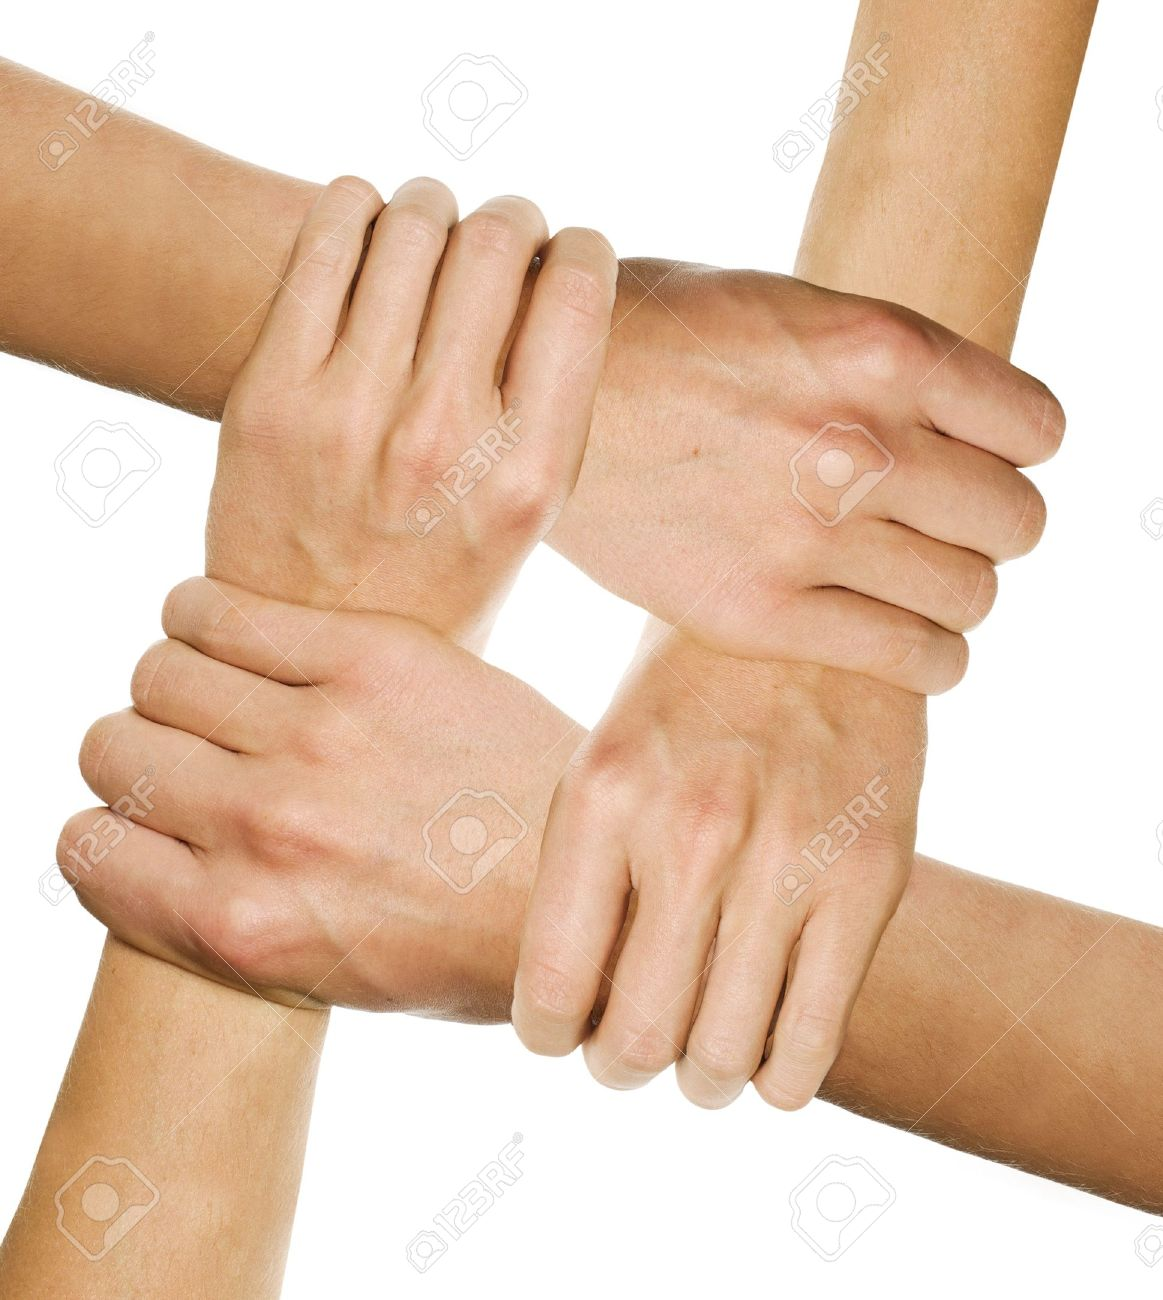 hands joined together symbolizing team spirit stock photo picture